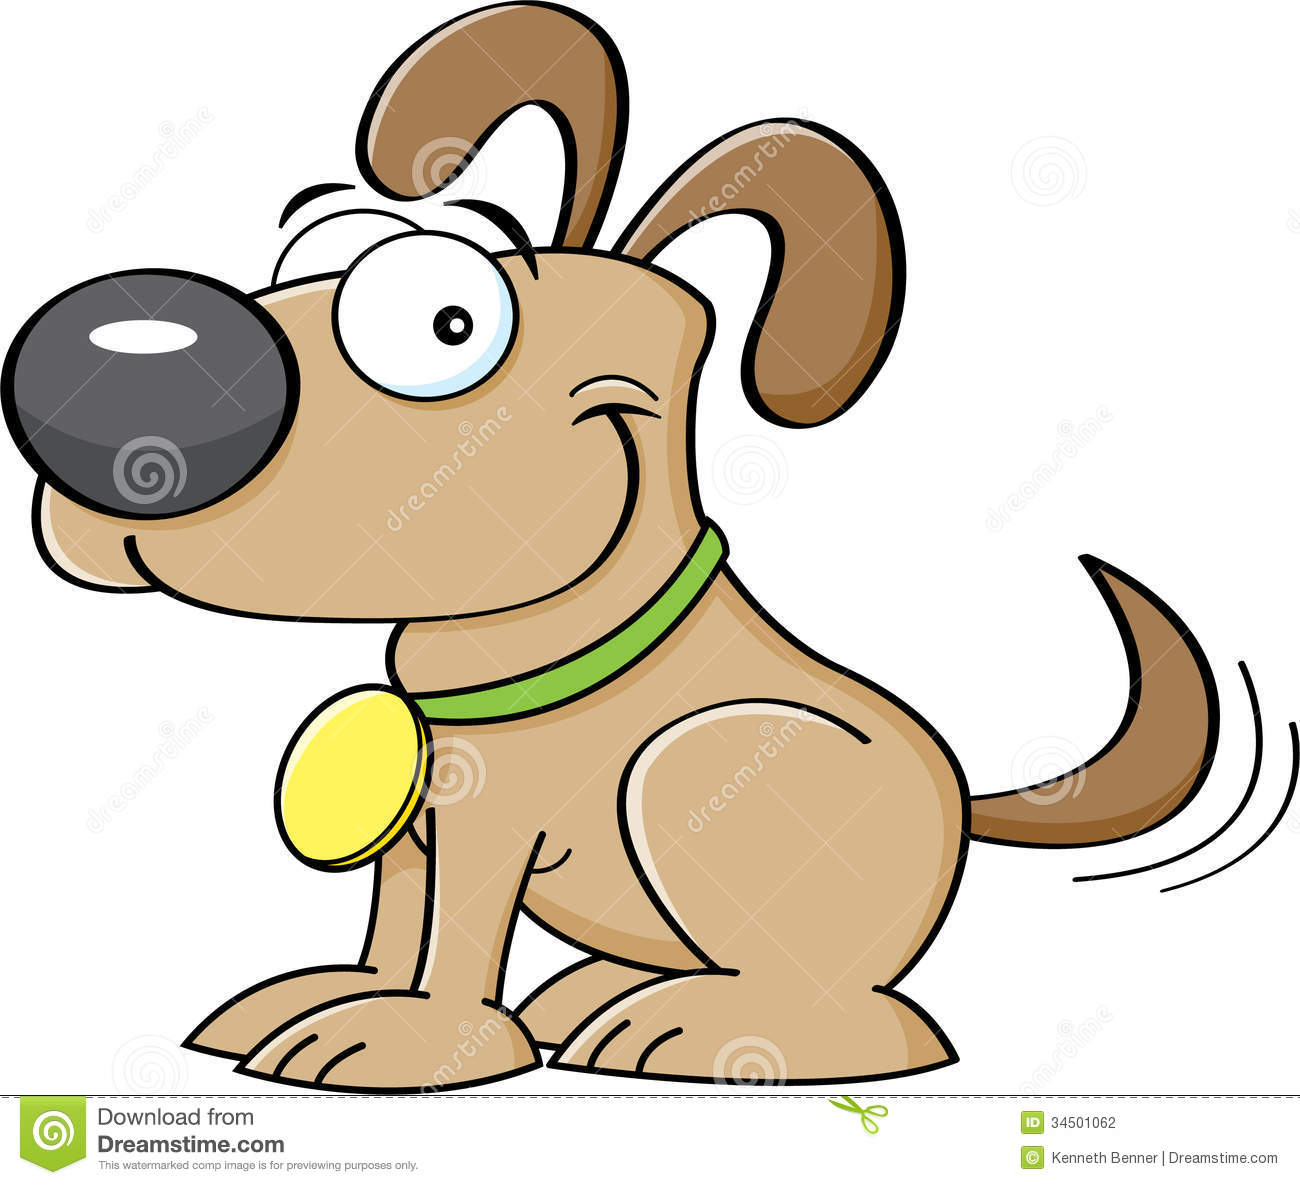 Clipart dog wagging tail. Tails clipartfest cartoon puppy